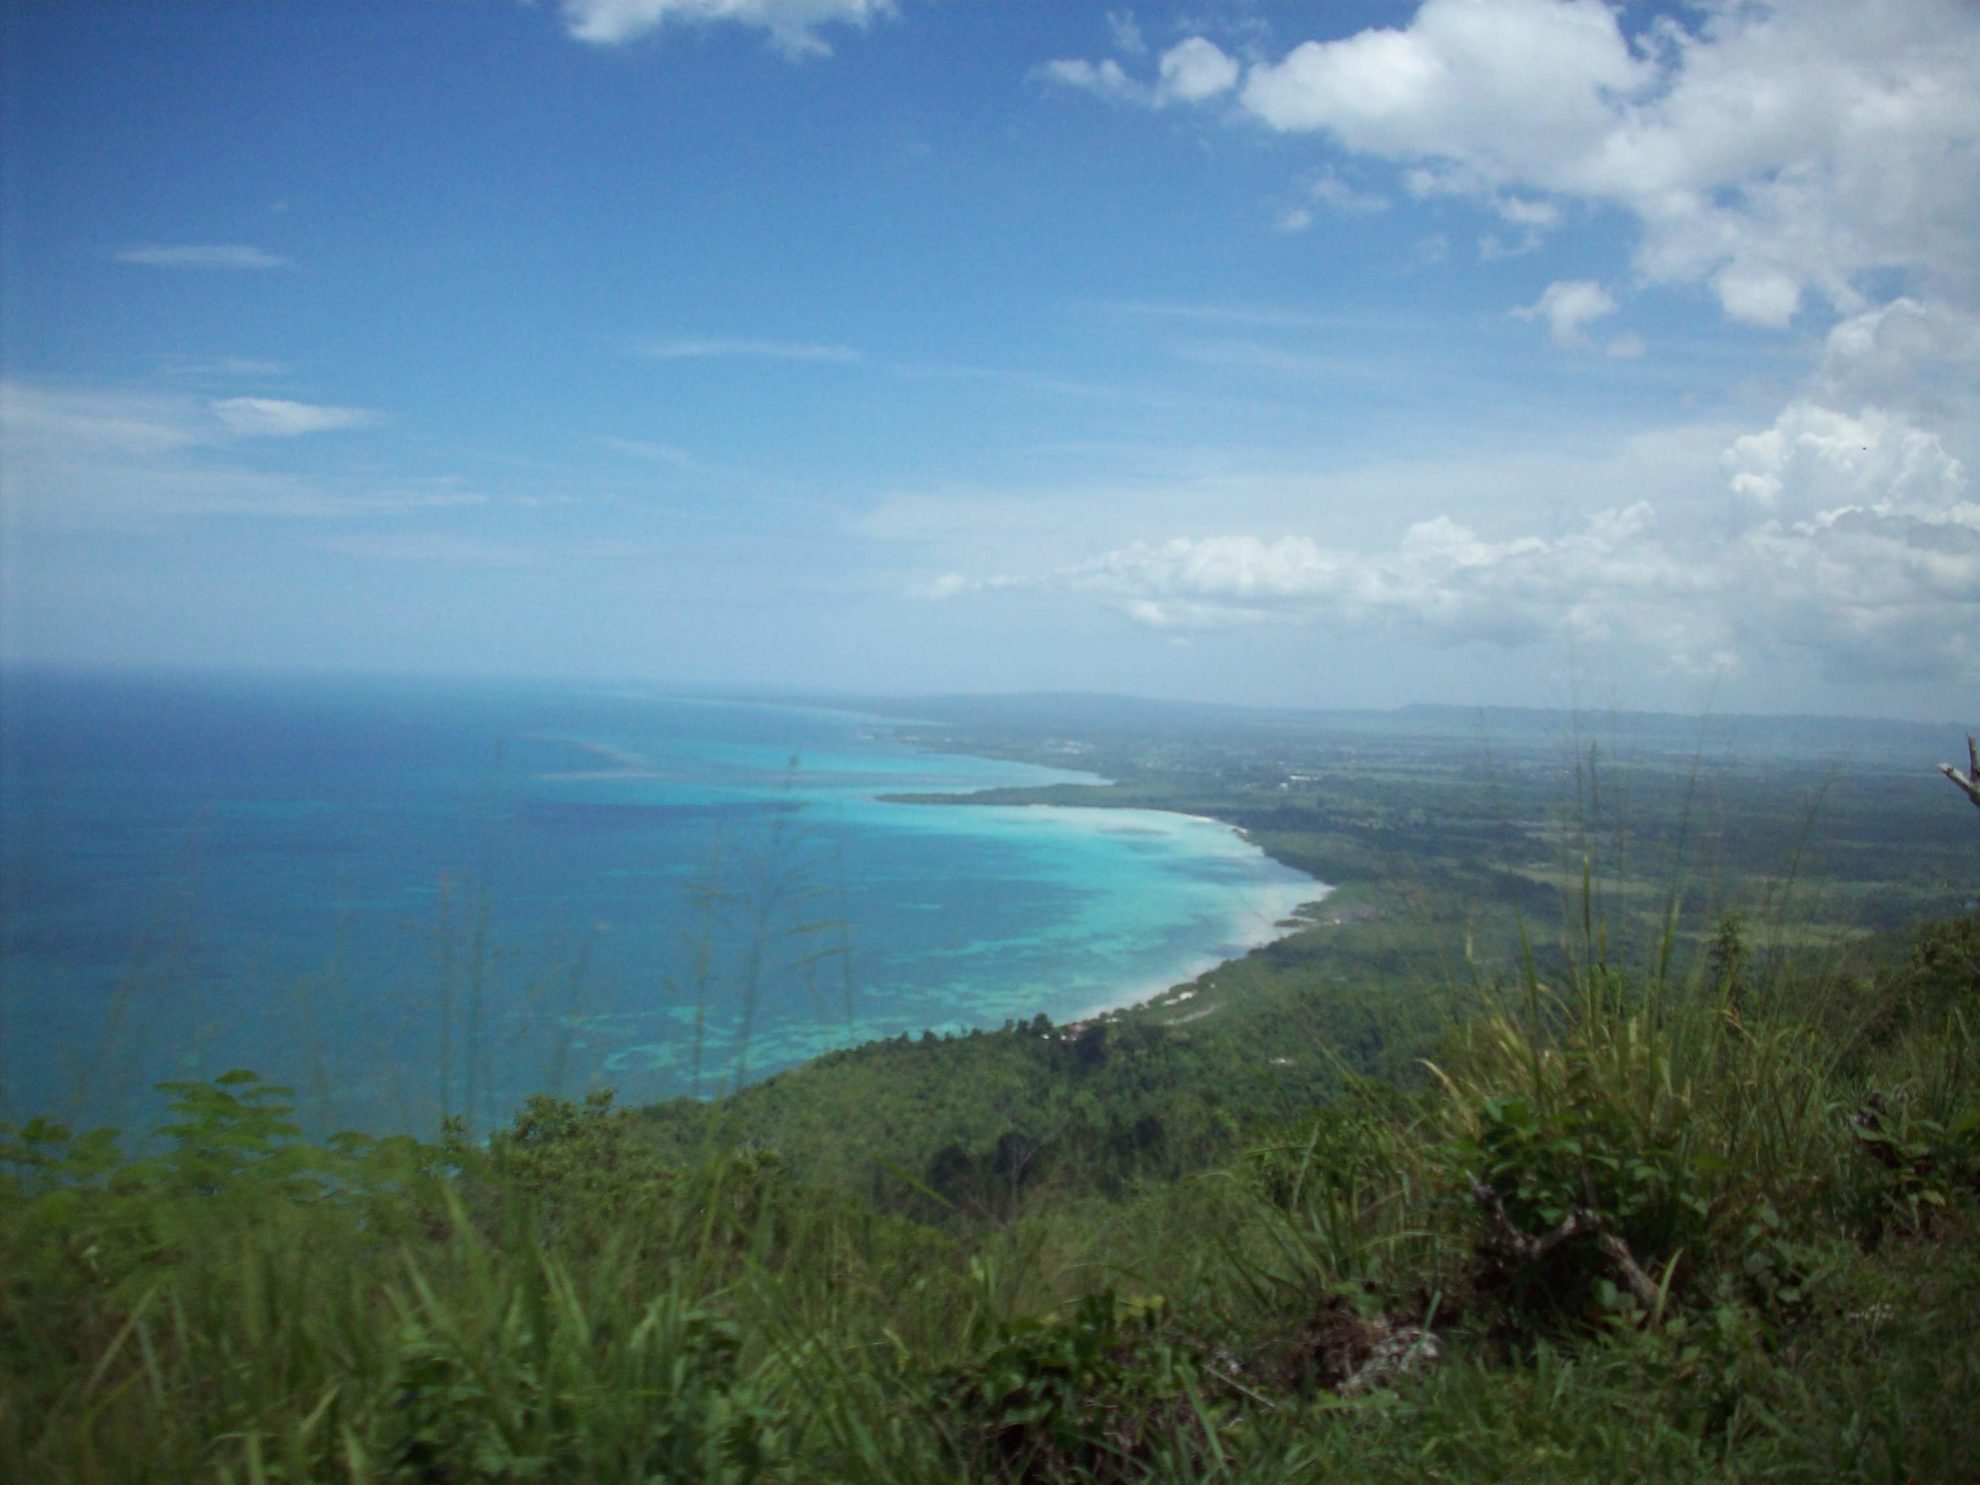 A beautiful panoramic mountain view of where the ocean meets the green shore.